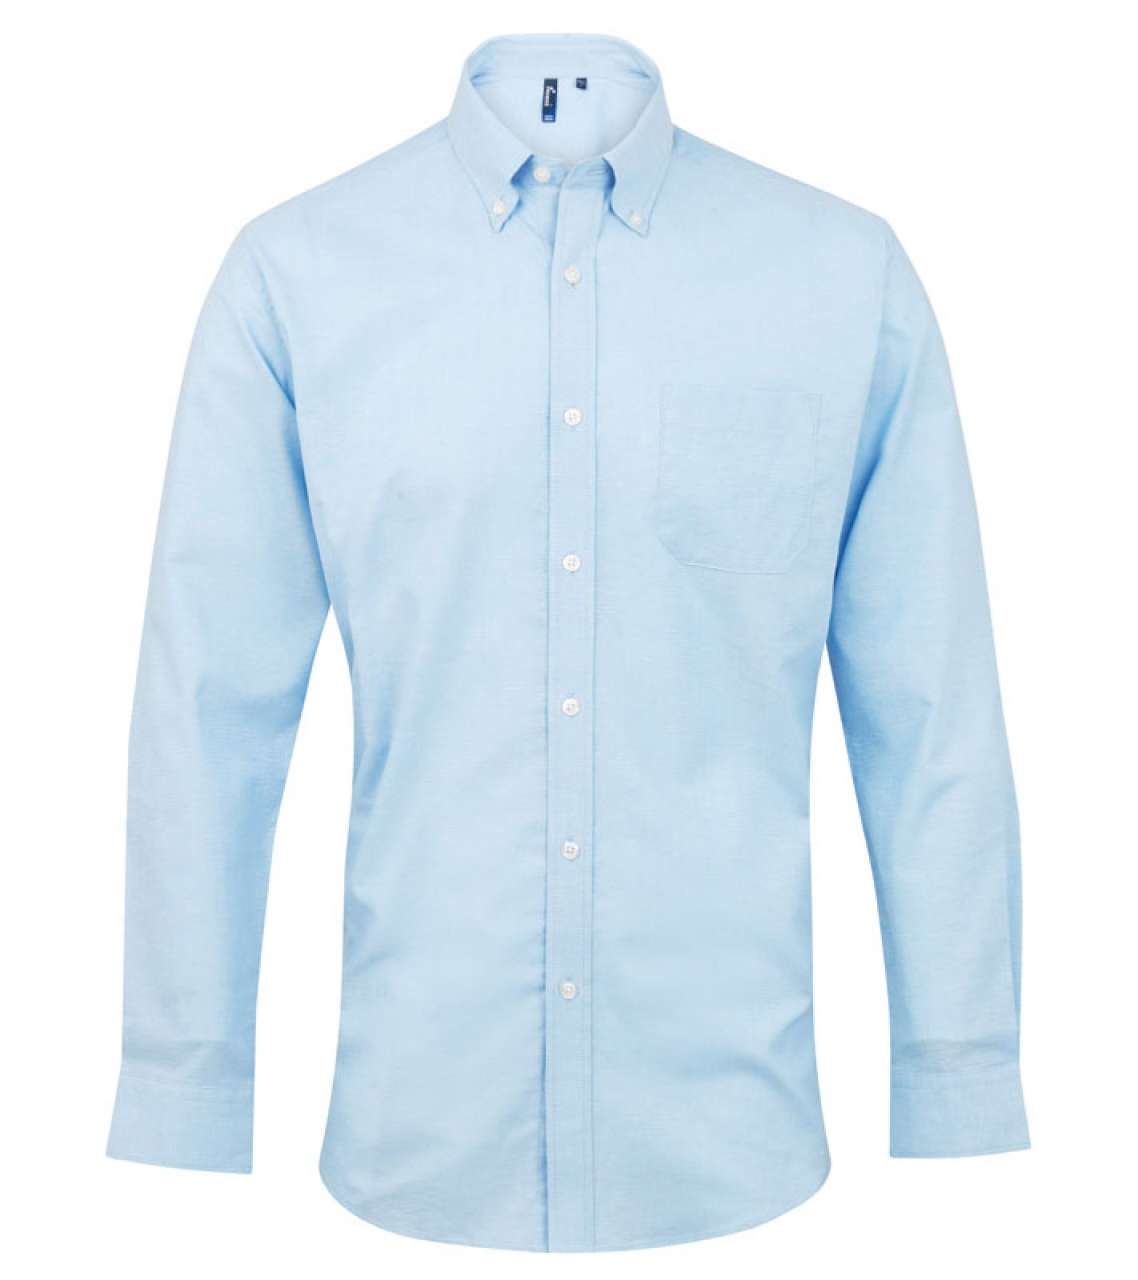 MEN'S LONG SLEEVE SIGNATURE OXFORD SHIRT